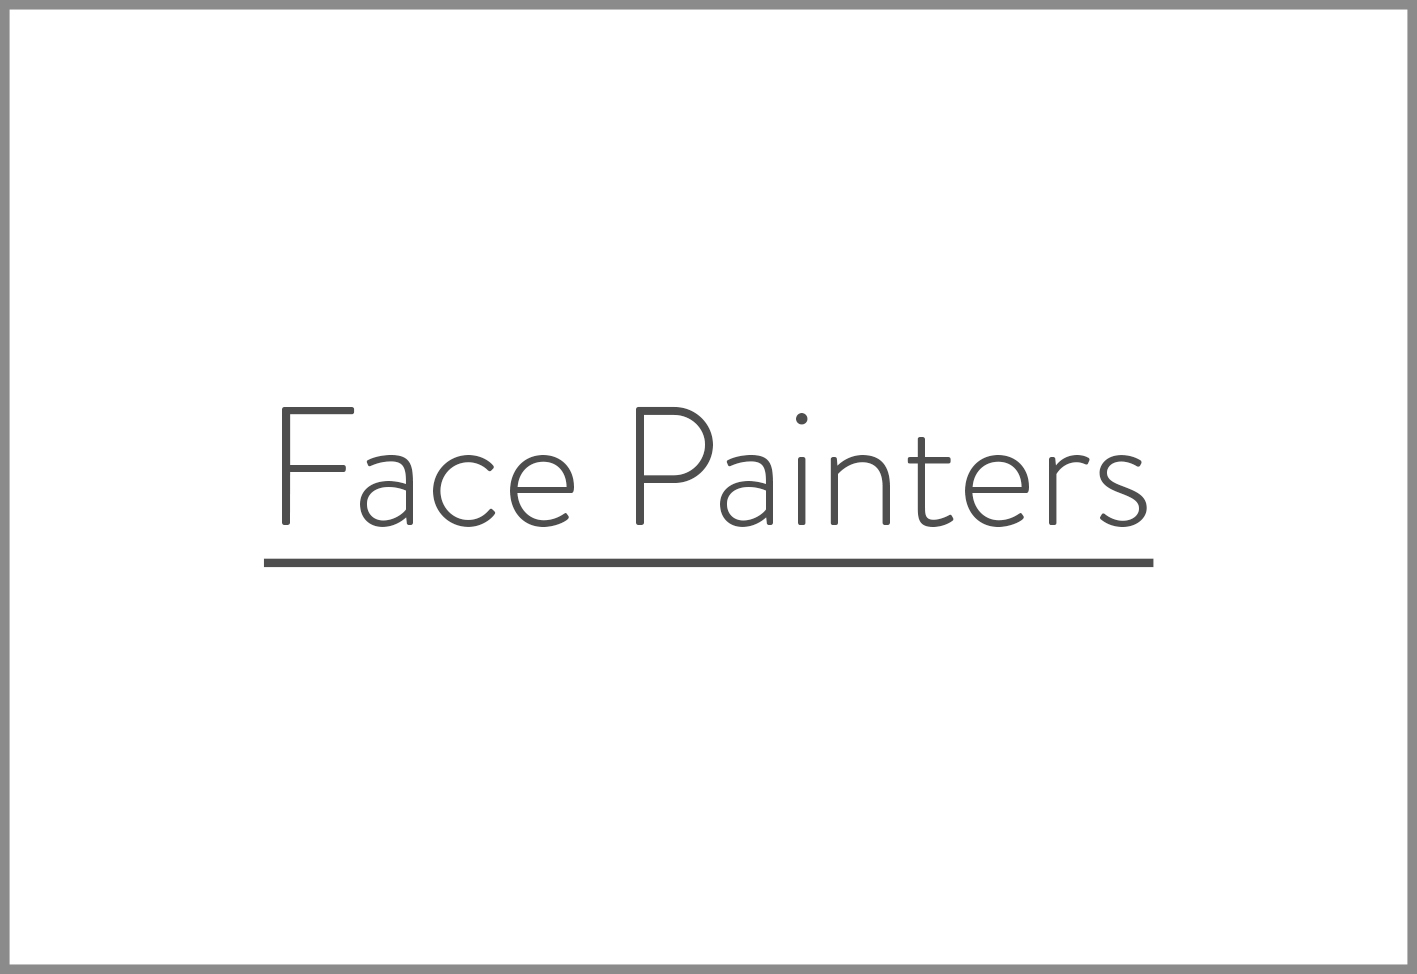 Face paineters.jpg